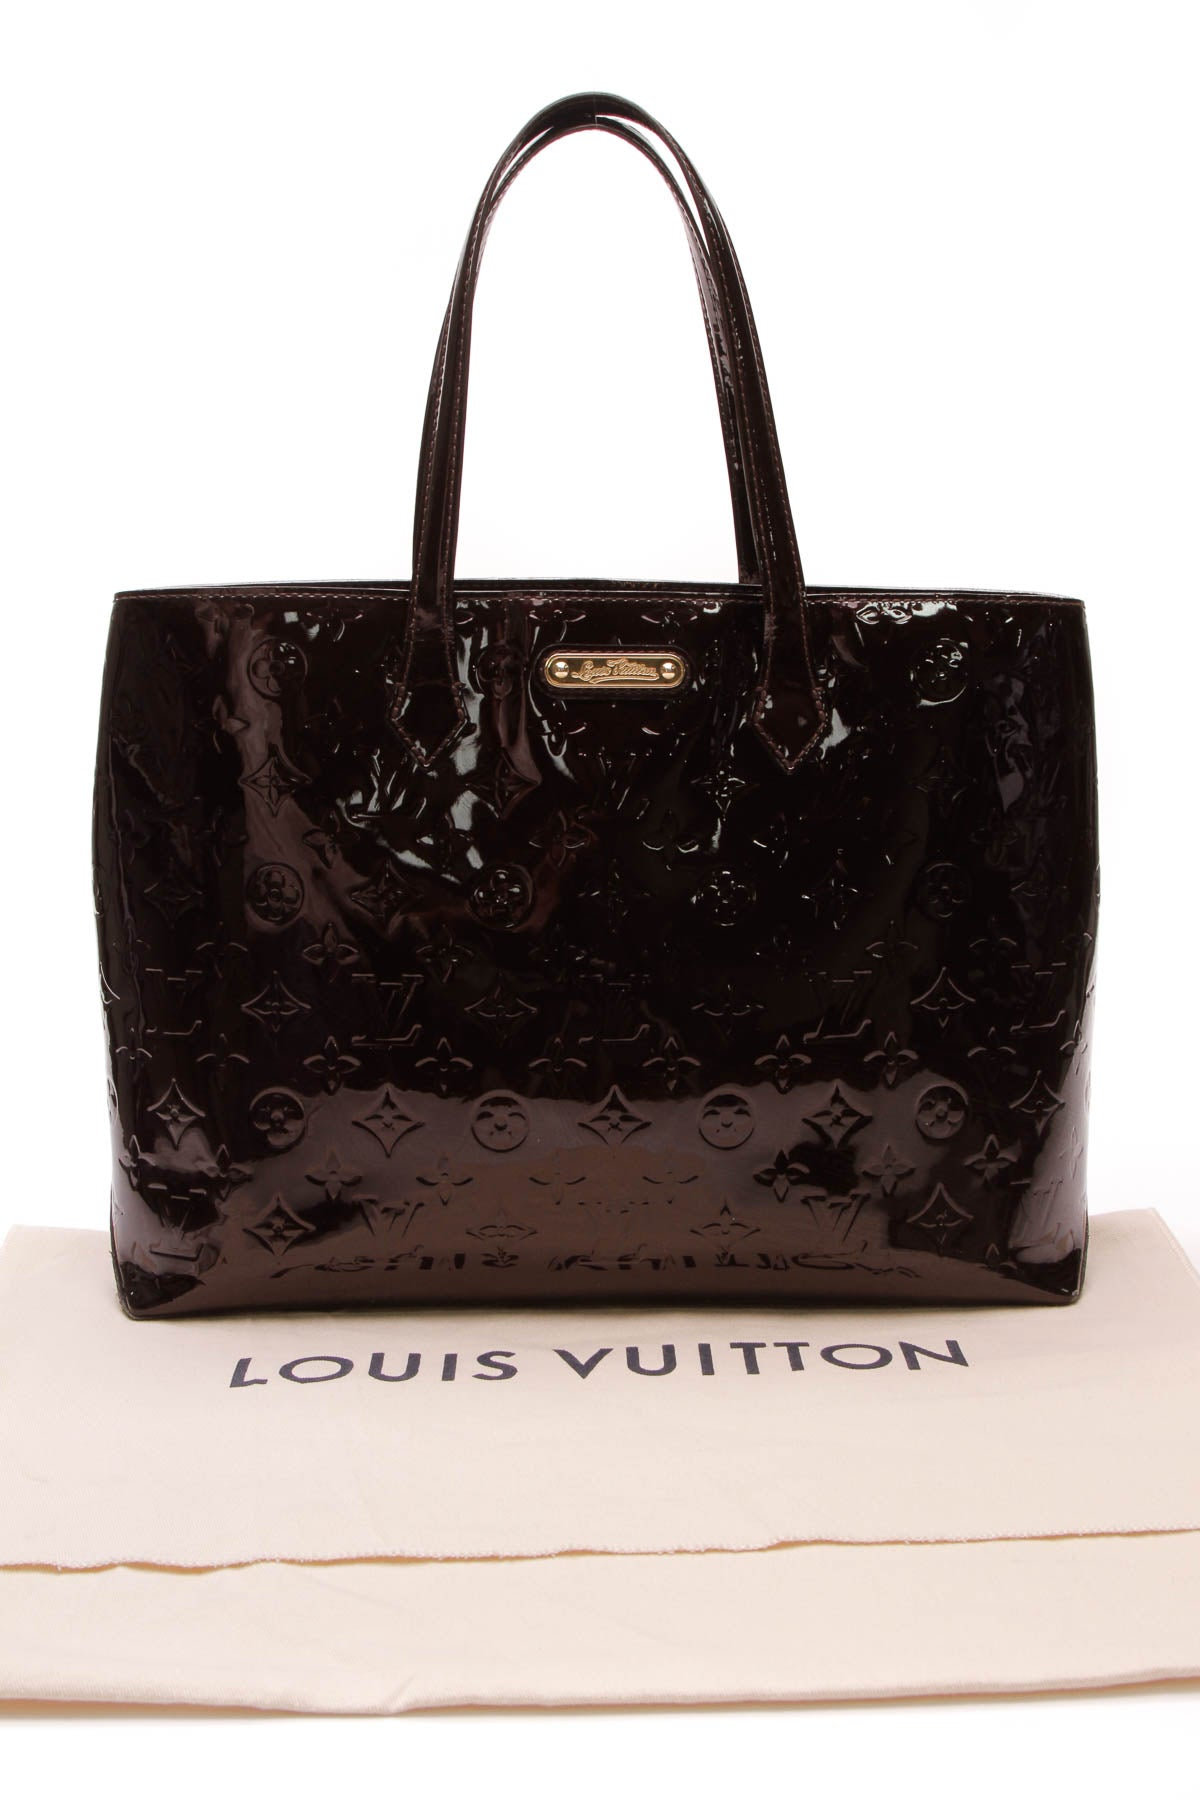 bffc615168 Shop Louis Vuitton Bag, Wallets, and Accessories - Couture USA